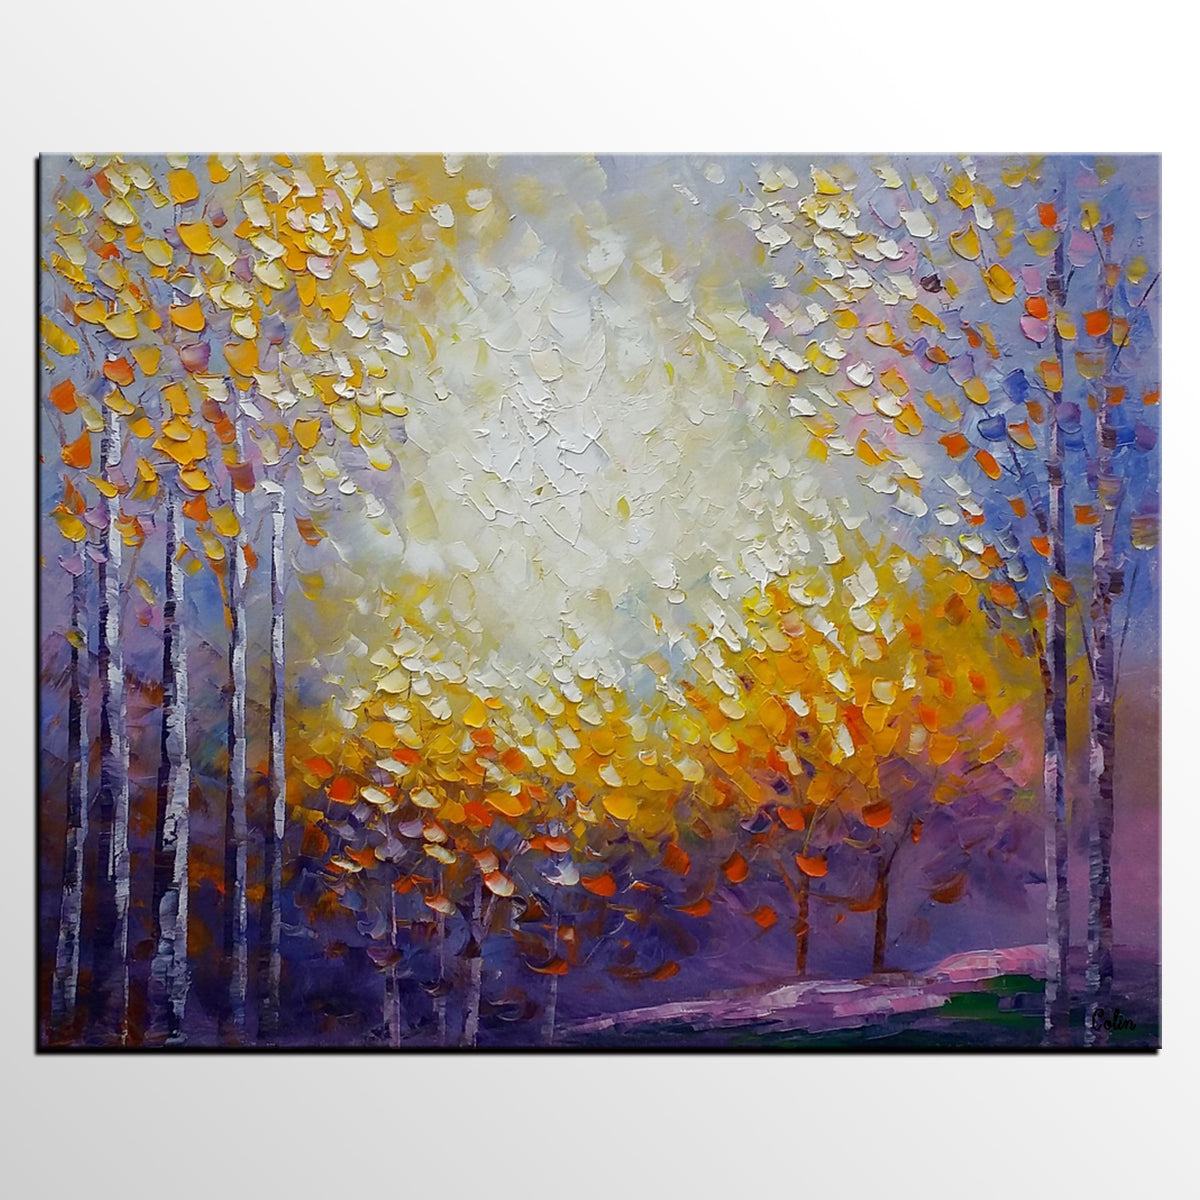 Autumn Tree Painting, Landscape Painting, Oil Painting, Abstract Painting, Large Art, Canvas Art, Bedroom Wall Art, Canvas Painting